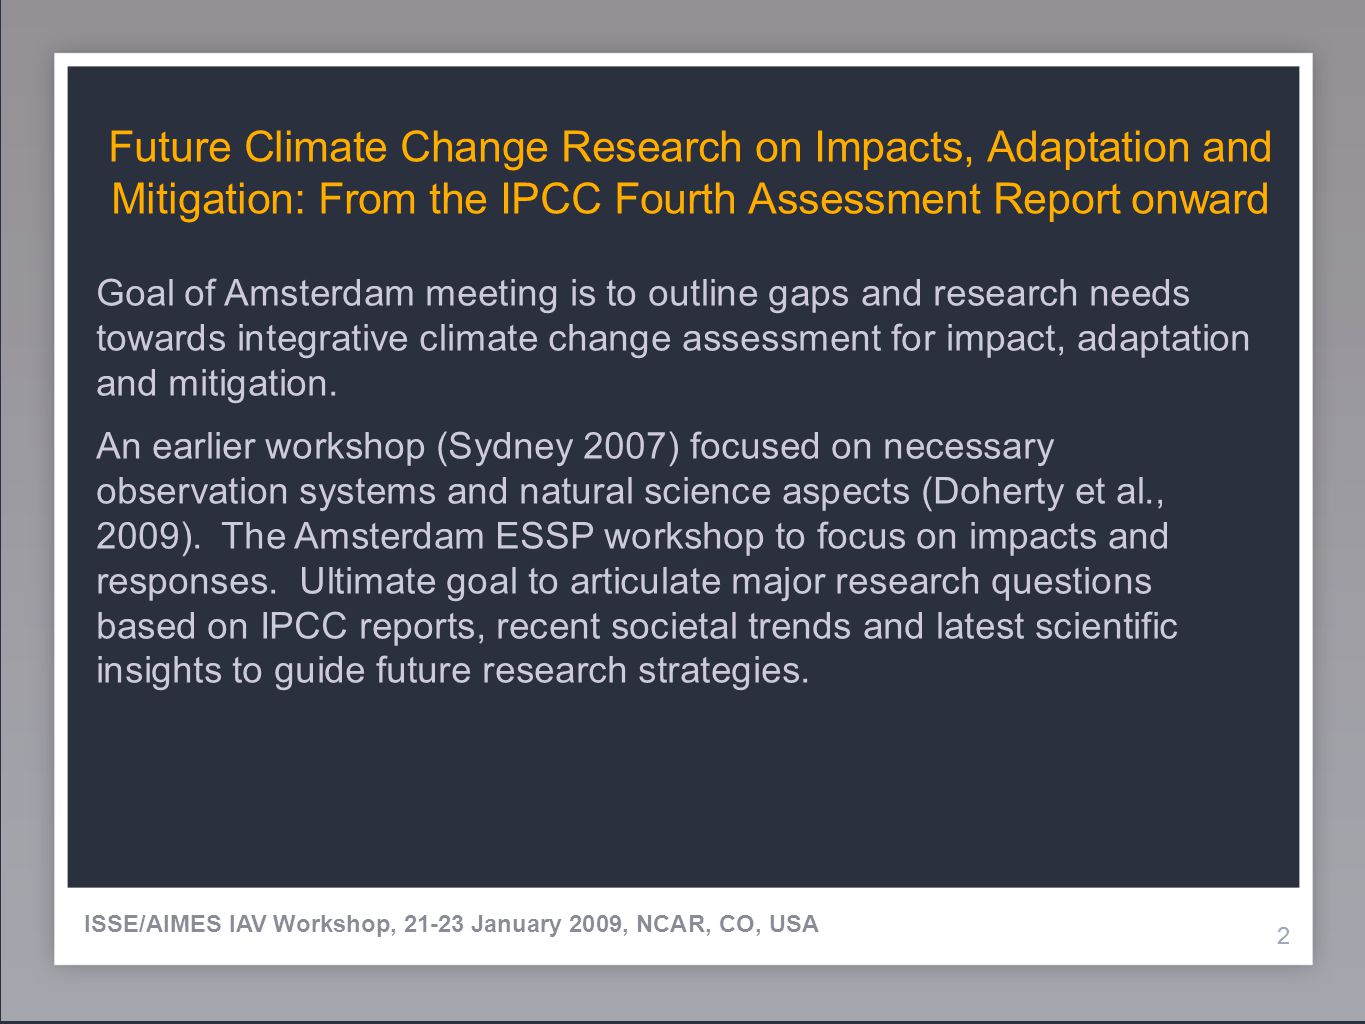 22 Future Climate Change Research on Impacts, Adaptation and Mitigation: From the IPCC Fourth Assessment Report onward 2 ISSE/AIMES IAV Workshop, 21-23 January 2009, NCAR, CO, USA Goal of Amsterdam meeting is to outline gaps and research needs towards integrative climate change assessment for impact, adaptation and mitigation.